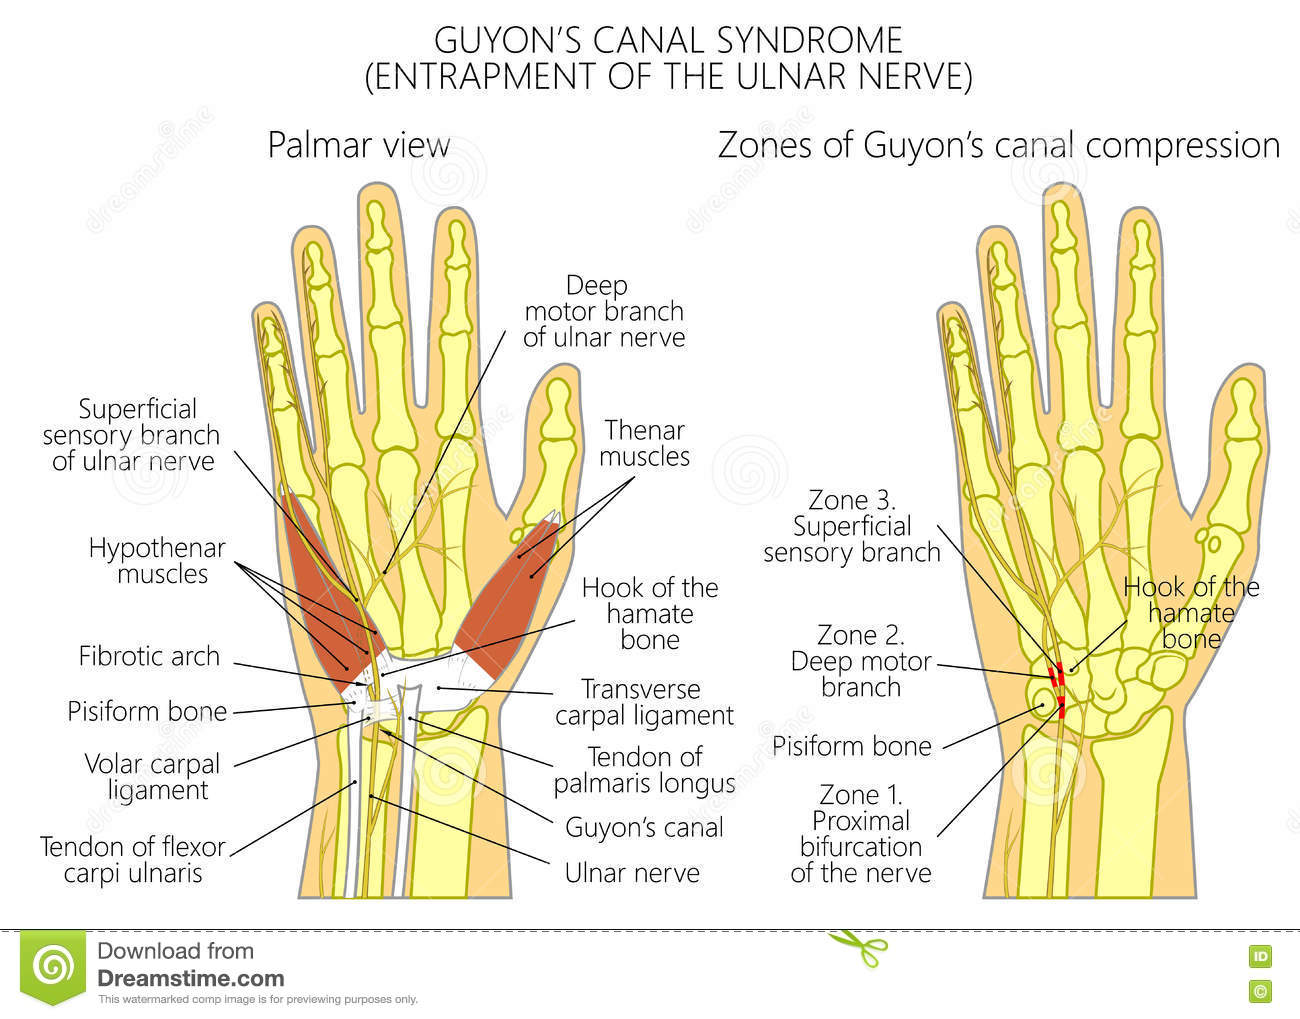 Entrapment Of The Ulnar Nerve In The Wrist In The Guyon\'s Cana Stock ...